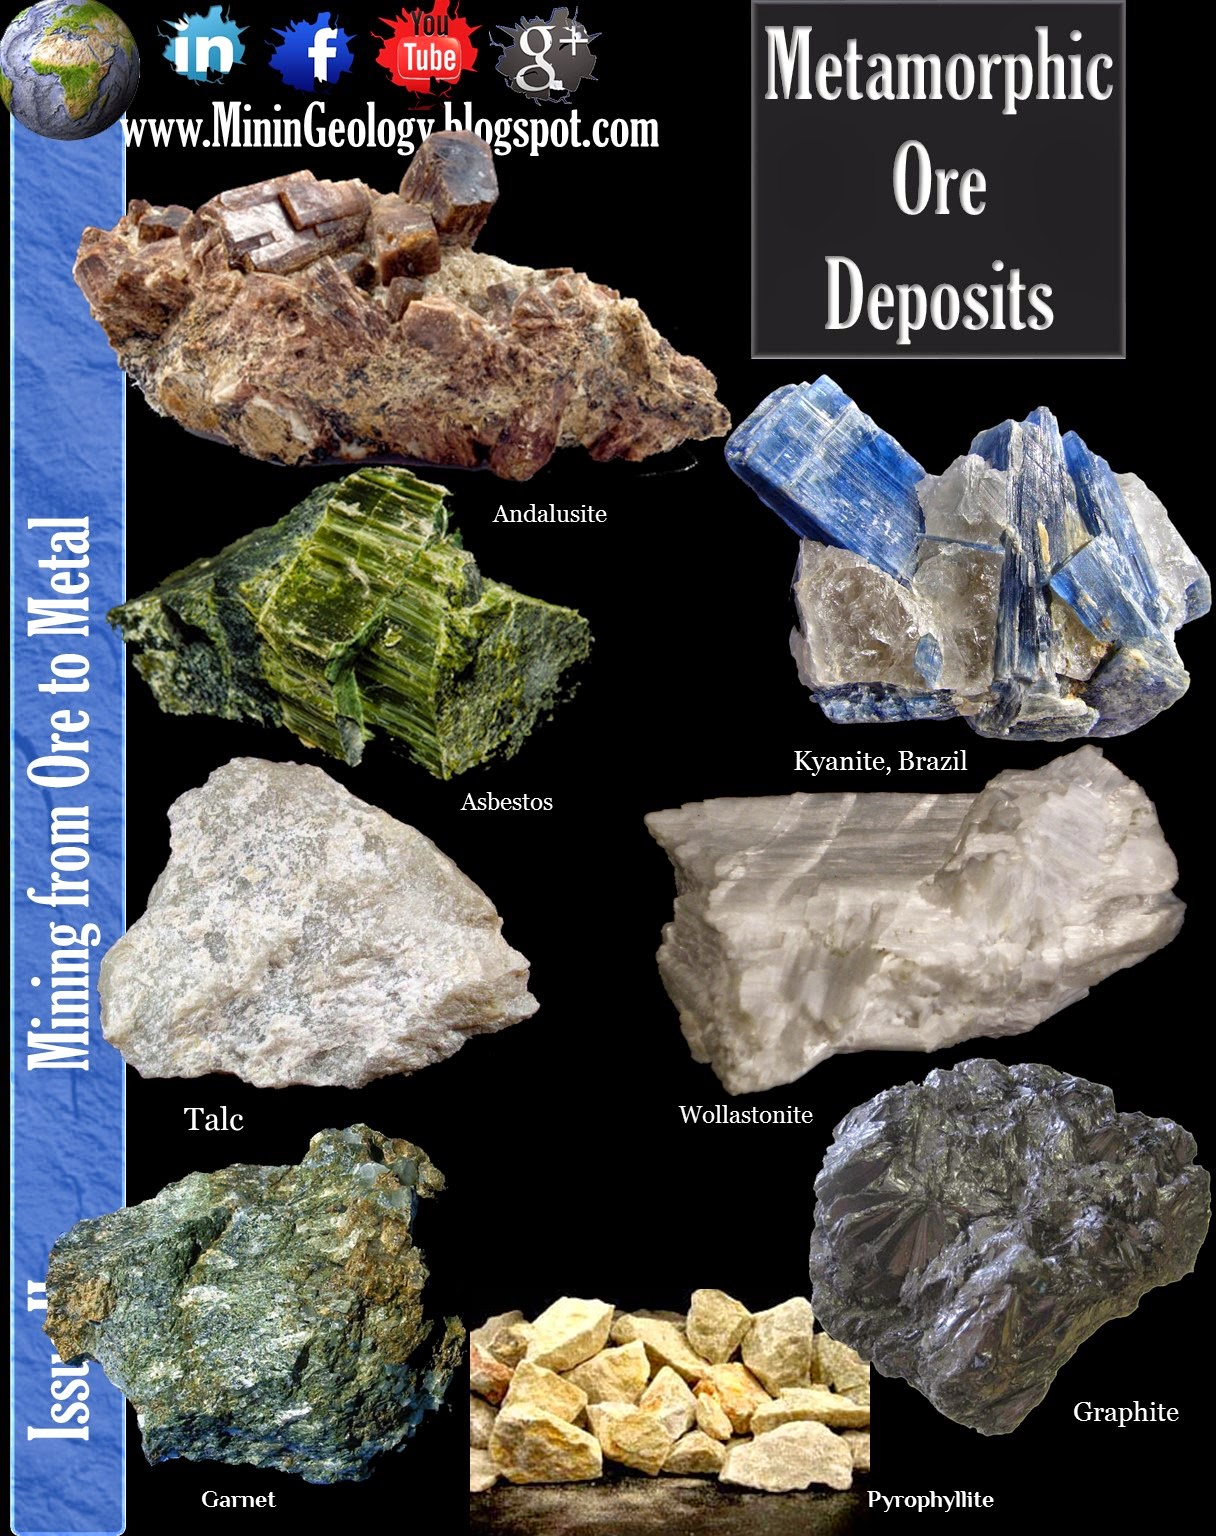 Metamorphic Ore Deposits